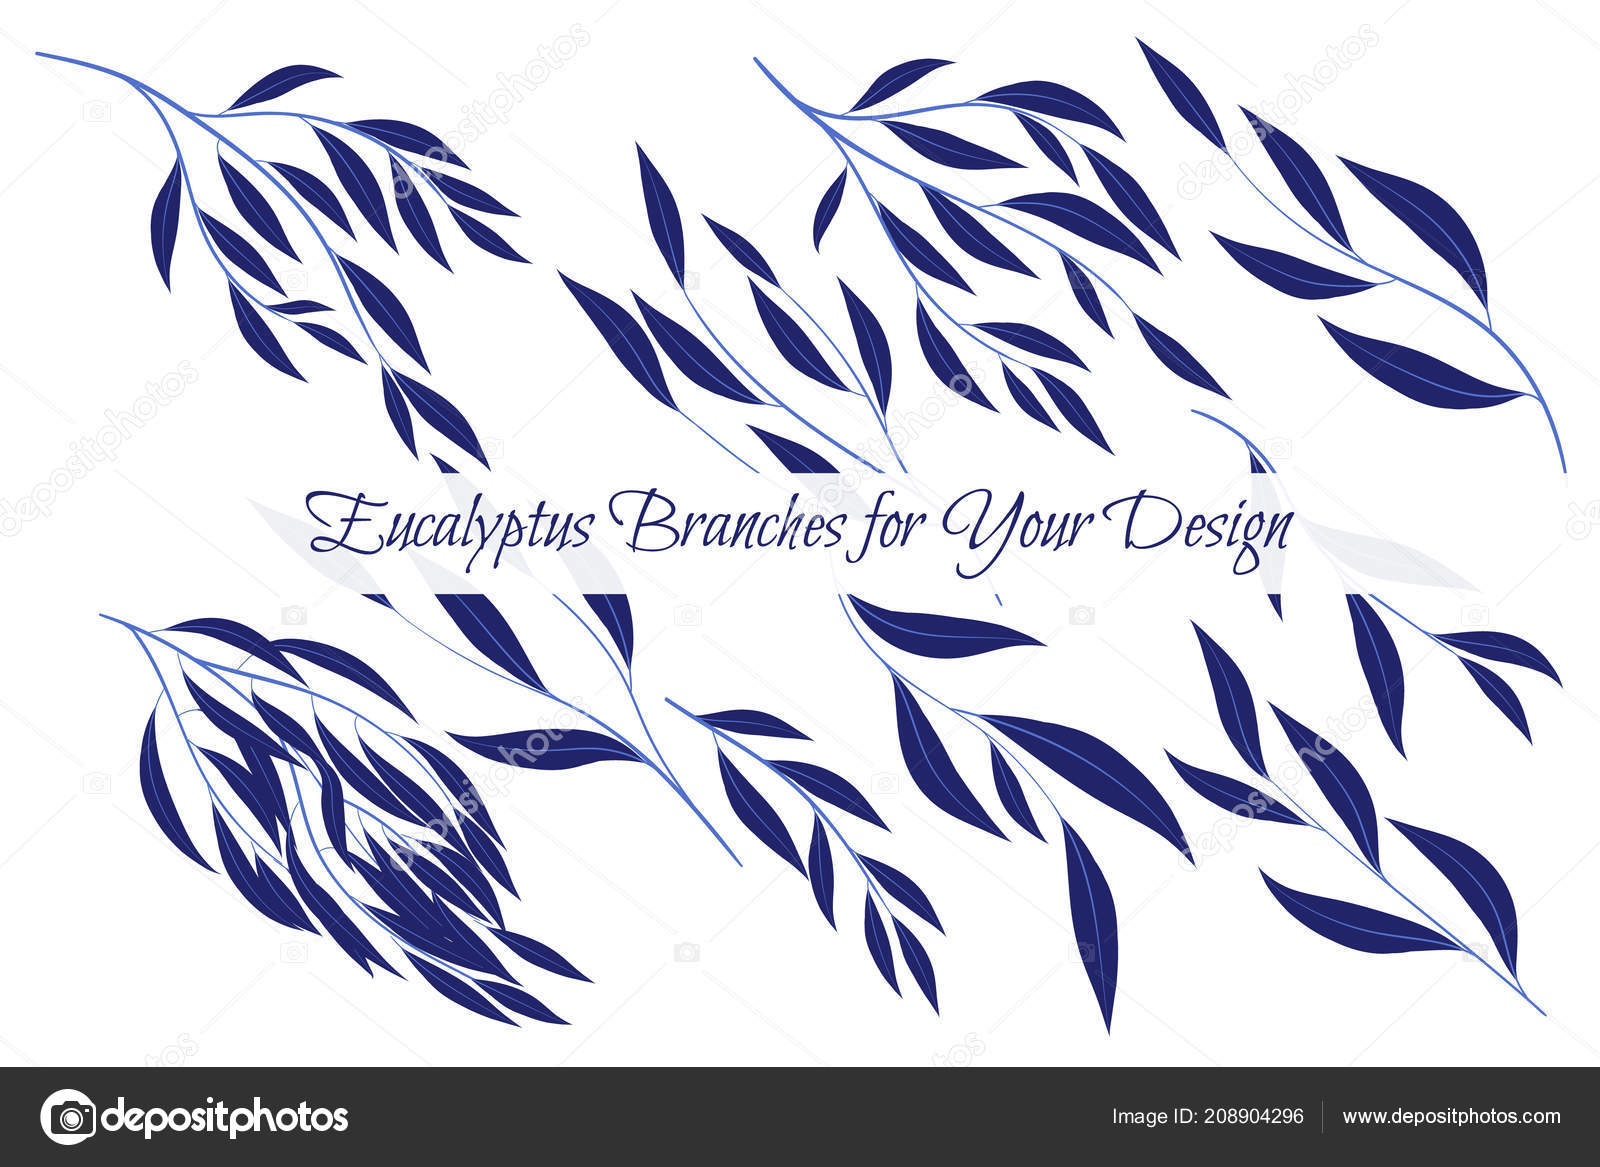 Eucalyptus vector decorative vector leaves and branches elegant decorative vector leaves and branches elegant foliage beautiful floral element for wedding design tropical plants eucalyptus vector for card invitation stopboris Image collections